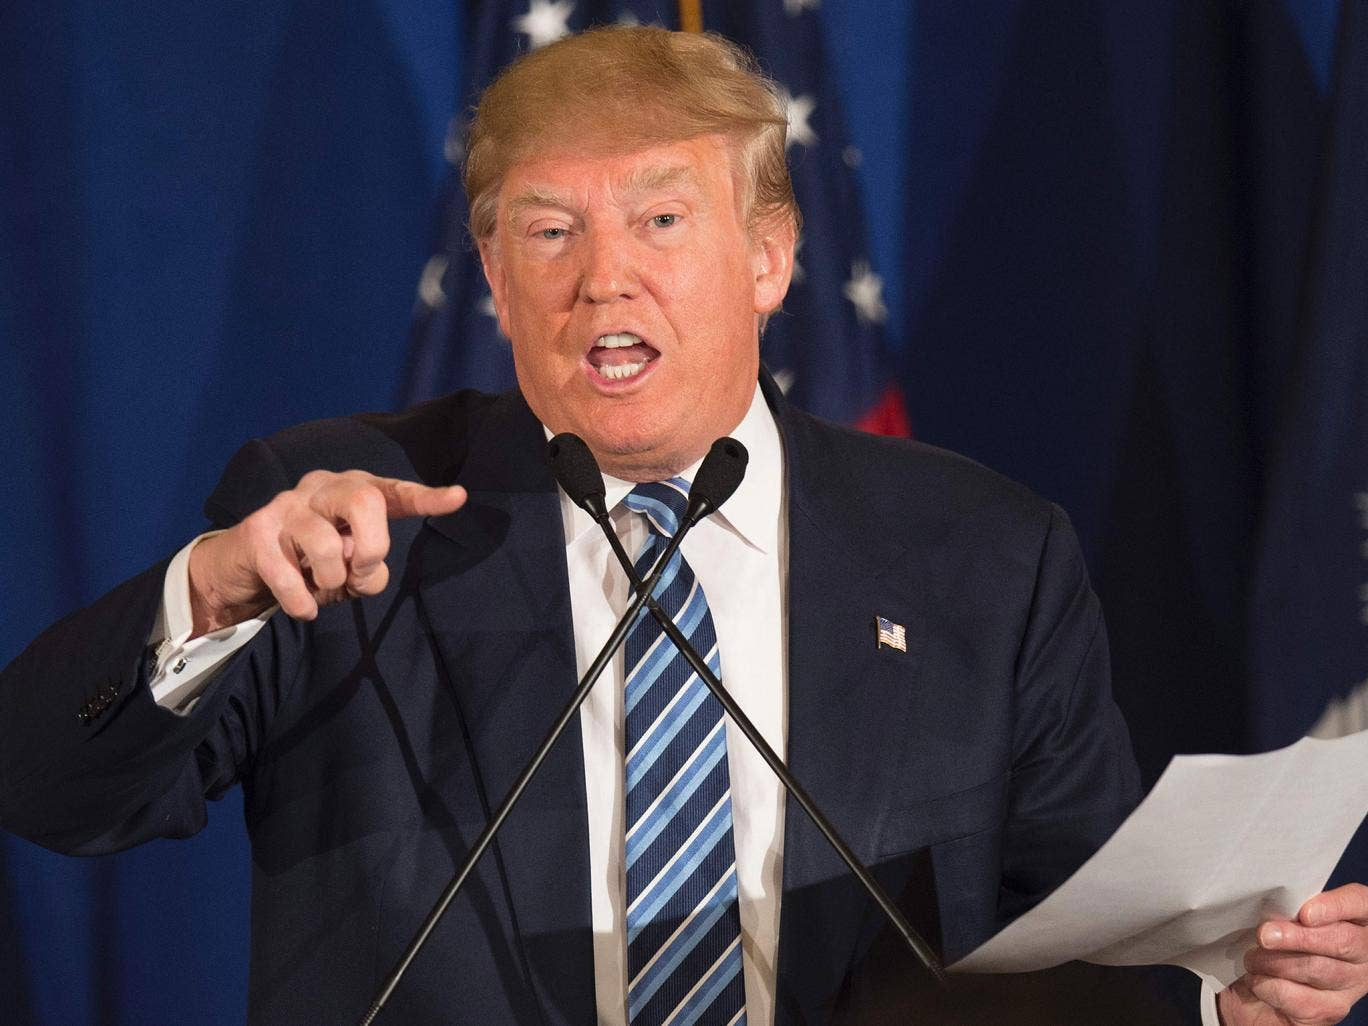 Donald Trump: Republican presidential candidate backed Iraq war in 2002 interview